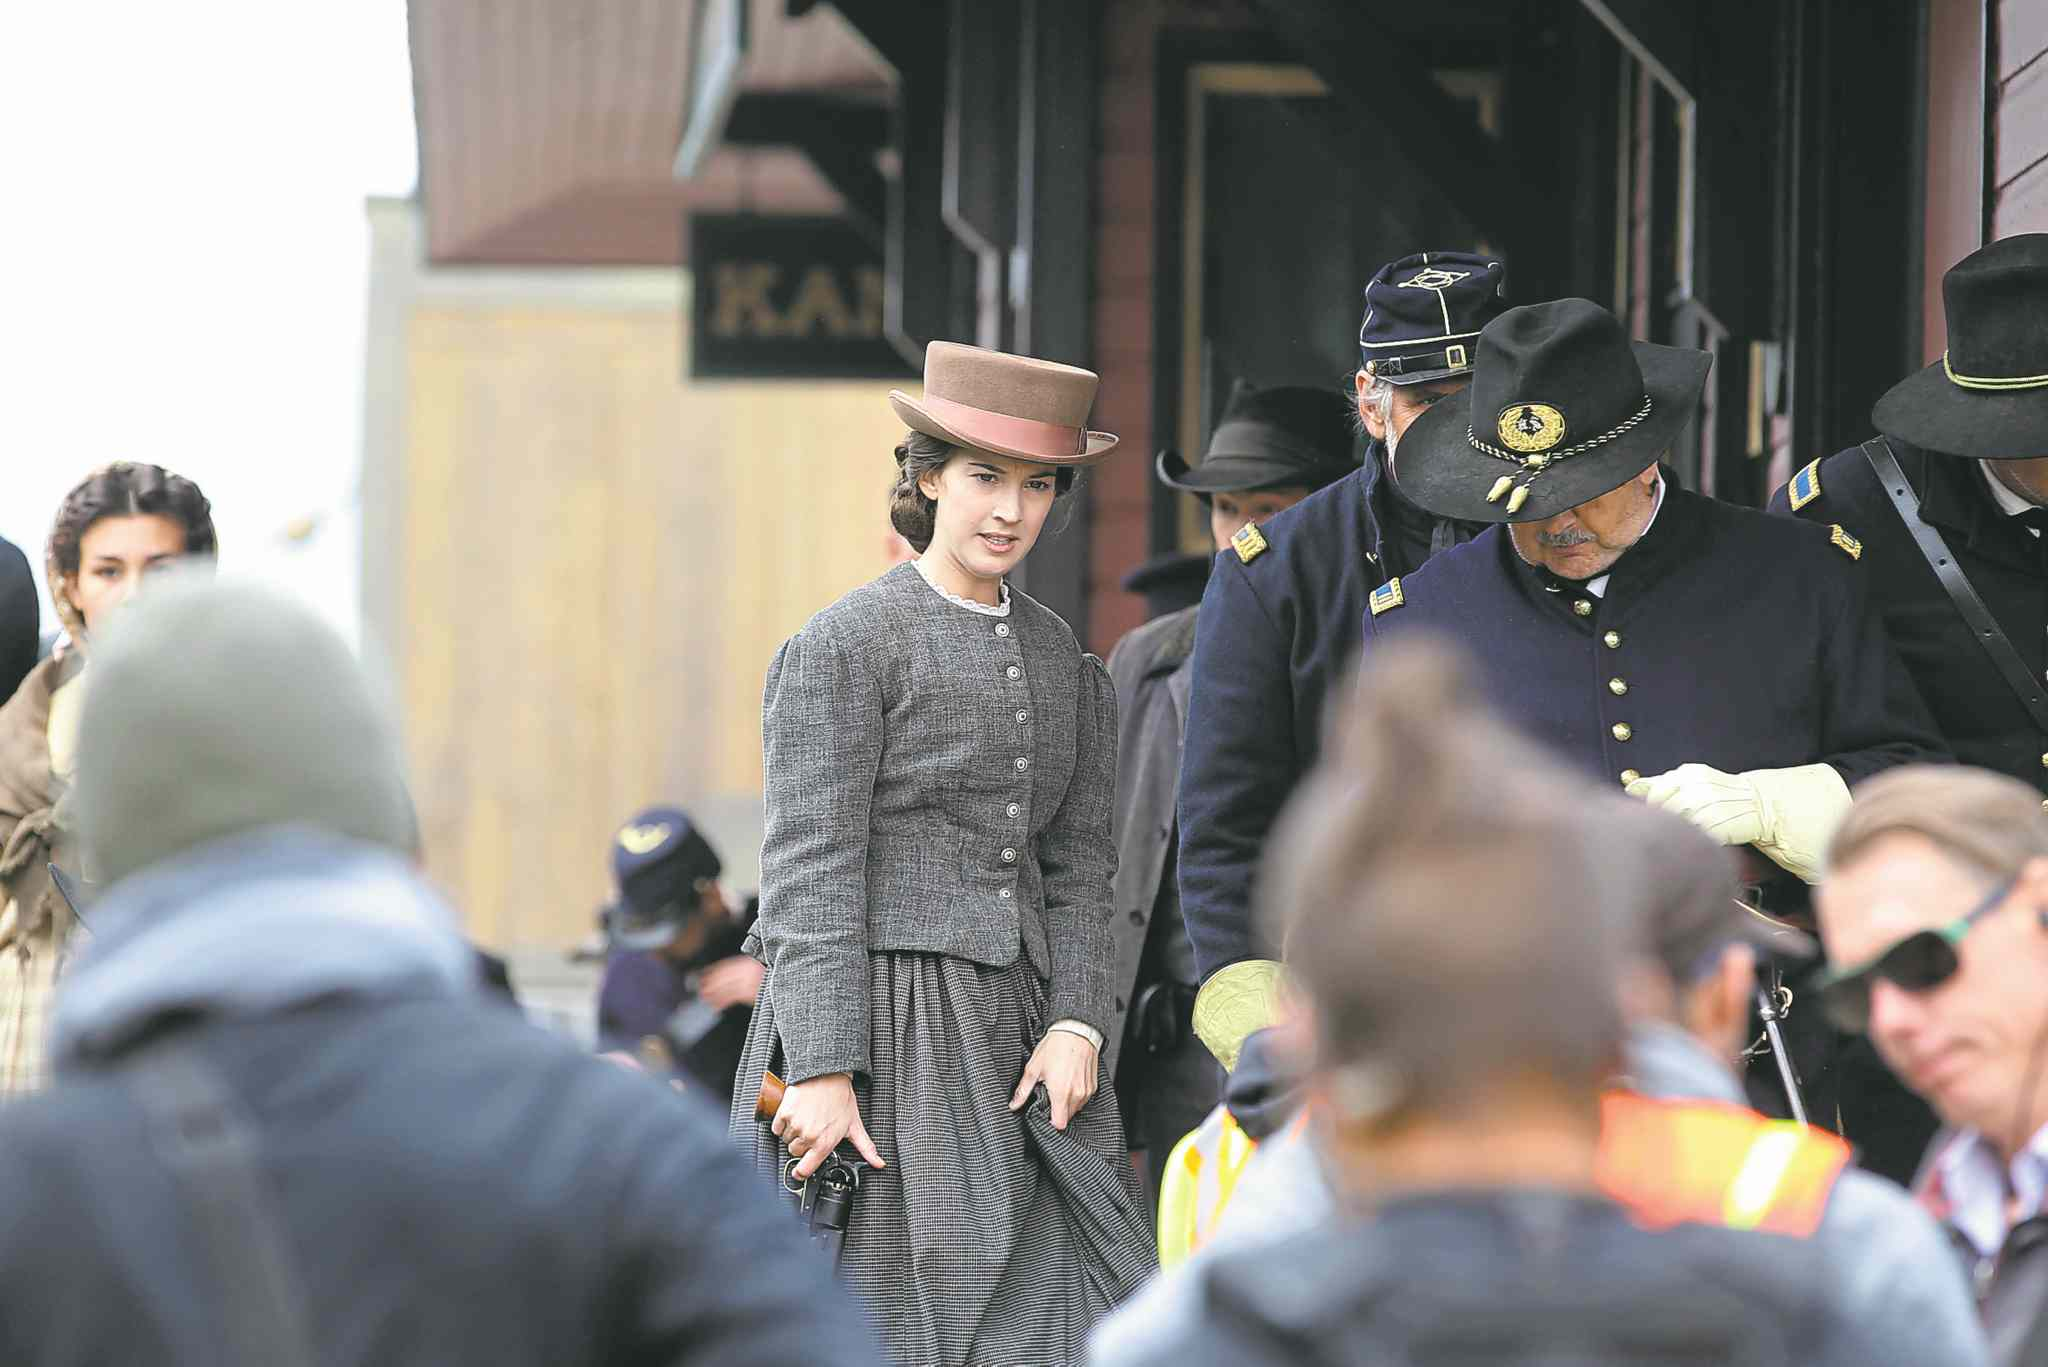 Actor Martha MacIsaac (above) plays Kate Warne, a Pinkertons operative credited with being America's first female detective. Crews and actors were out in full force  Thursday in Grosse Isle, where the TV  series The Pinkertons is currently being filmed.